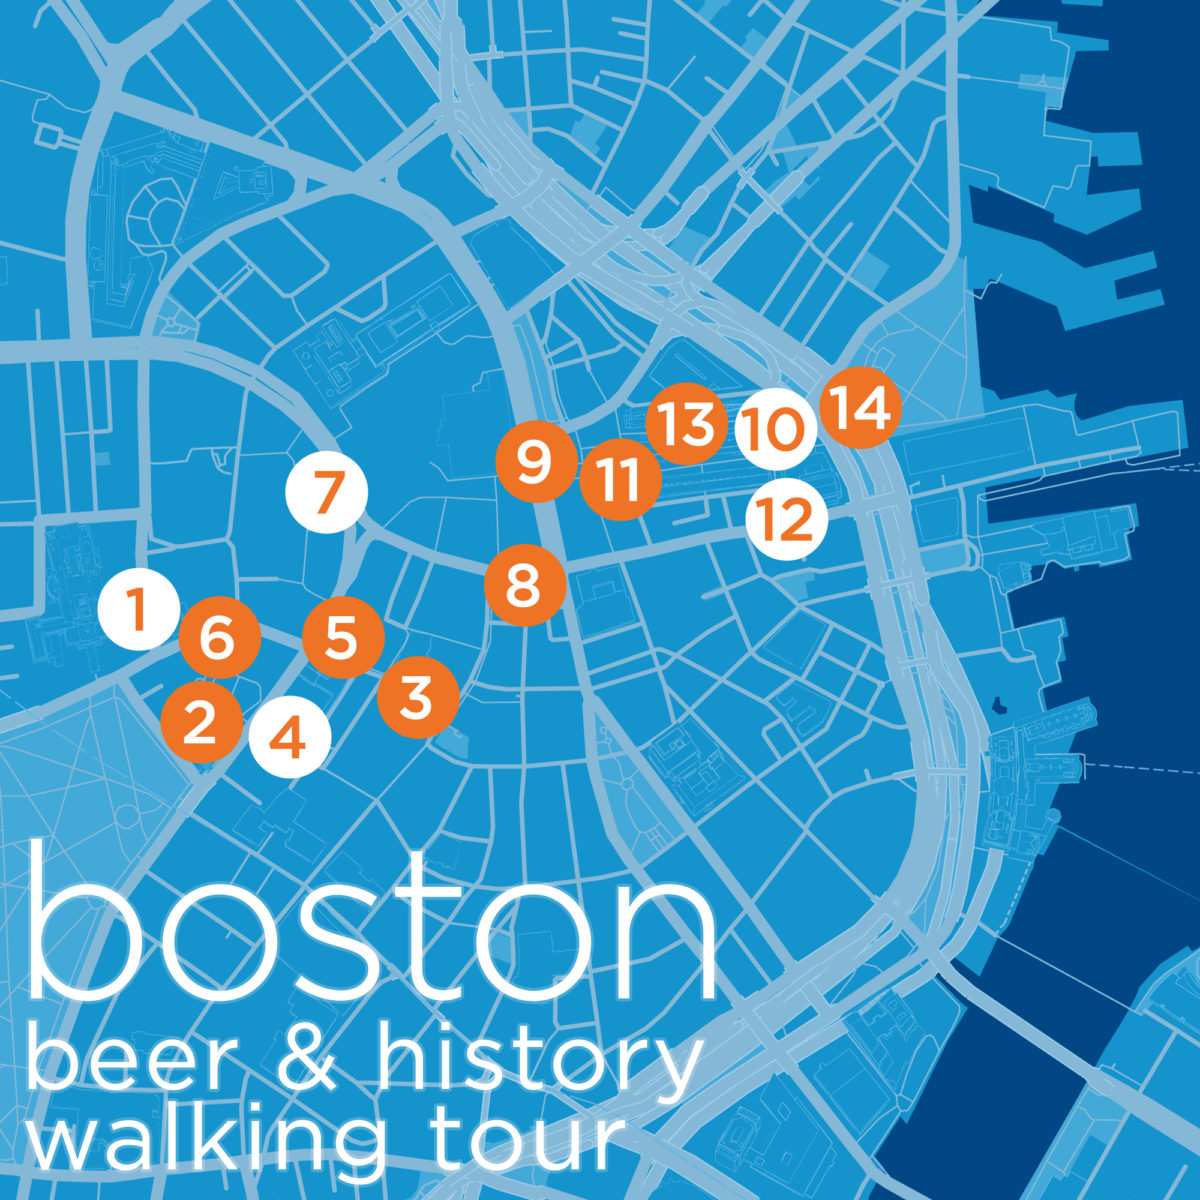 Boston Map Historical Sites.Boston Low Key Watering Holes History Tour Map Sun Country View